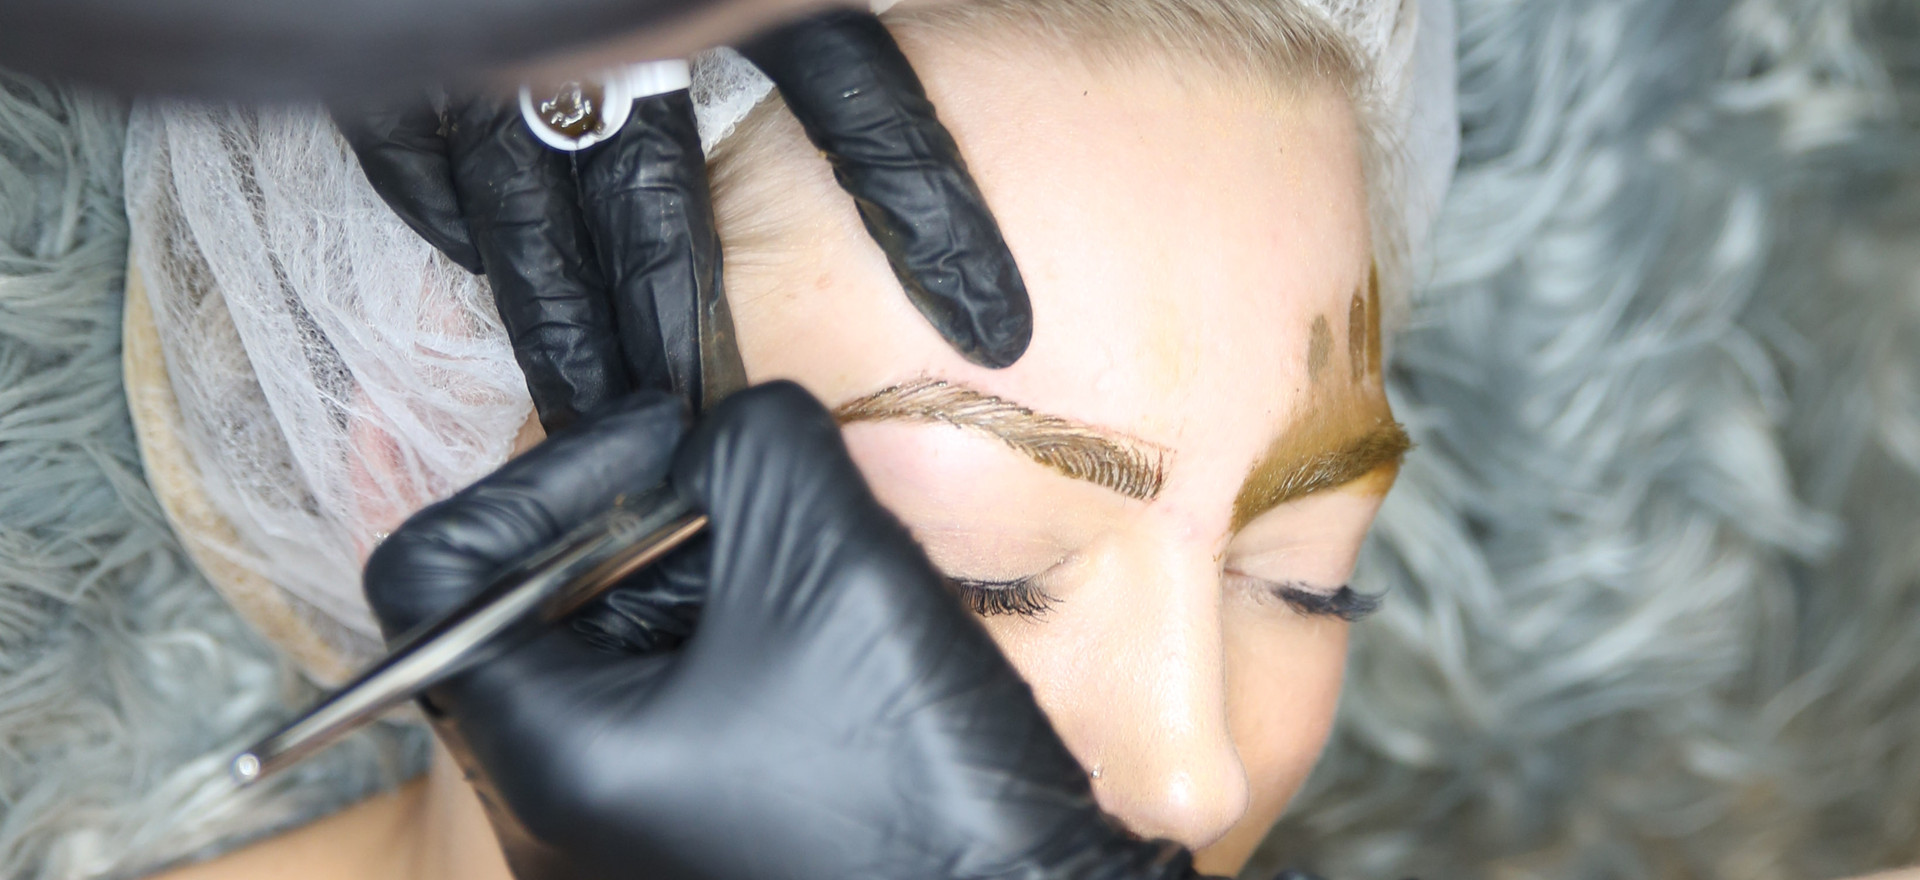 Start implanting the pigment on the skin doing little strokes that mimics eyebrow hair.